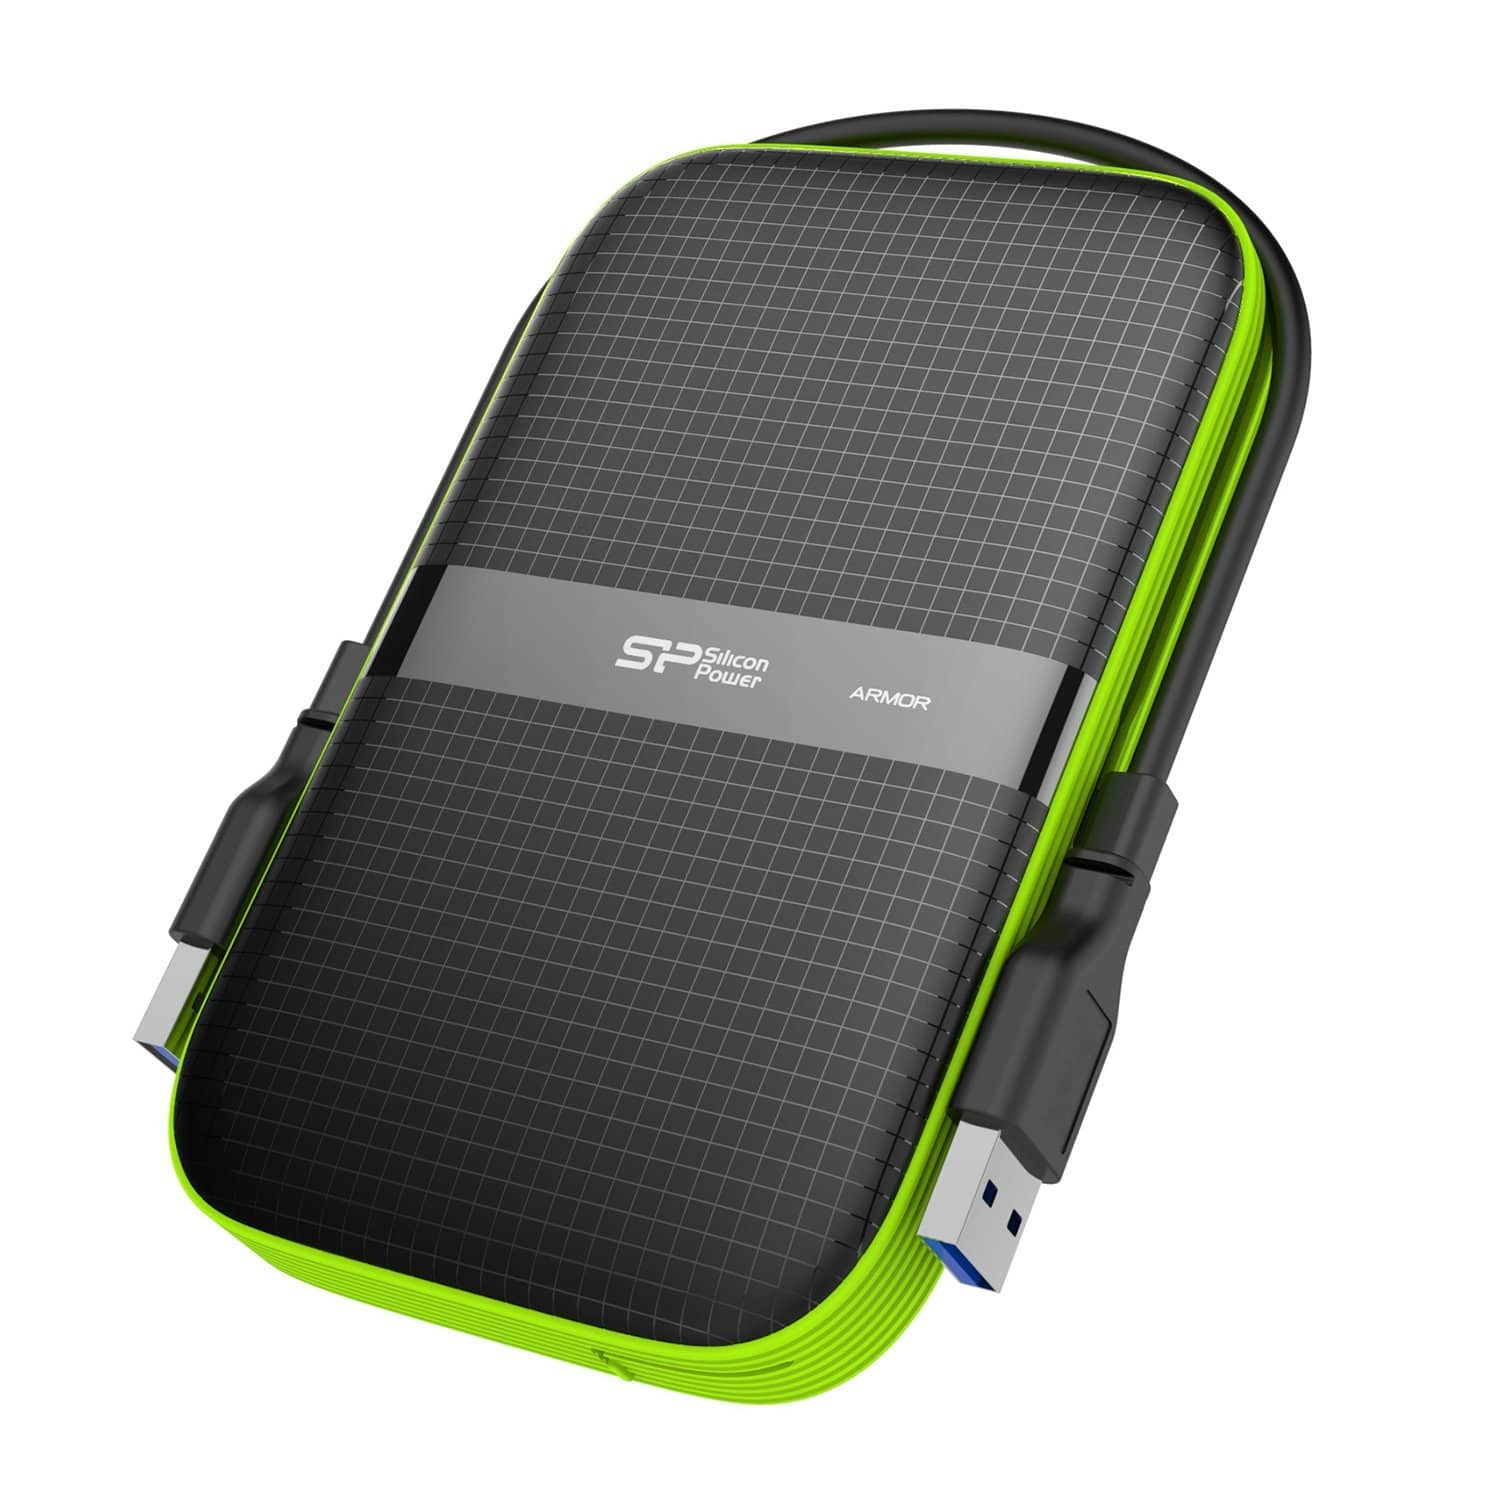 15% off for Silicon Power 5TB Hard Drive (work with xbox ps4 pc mac) with Promo Code $174